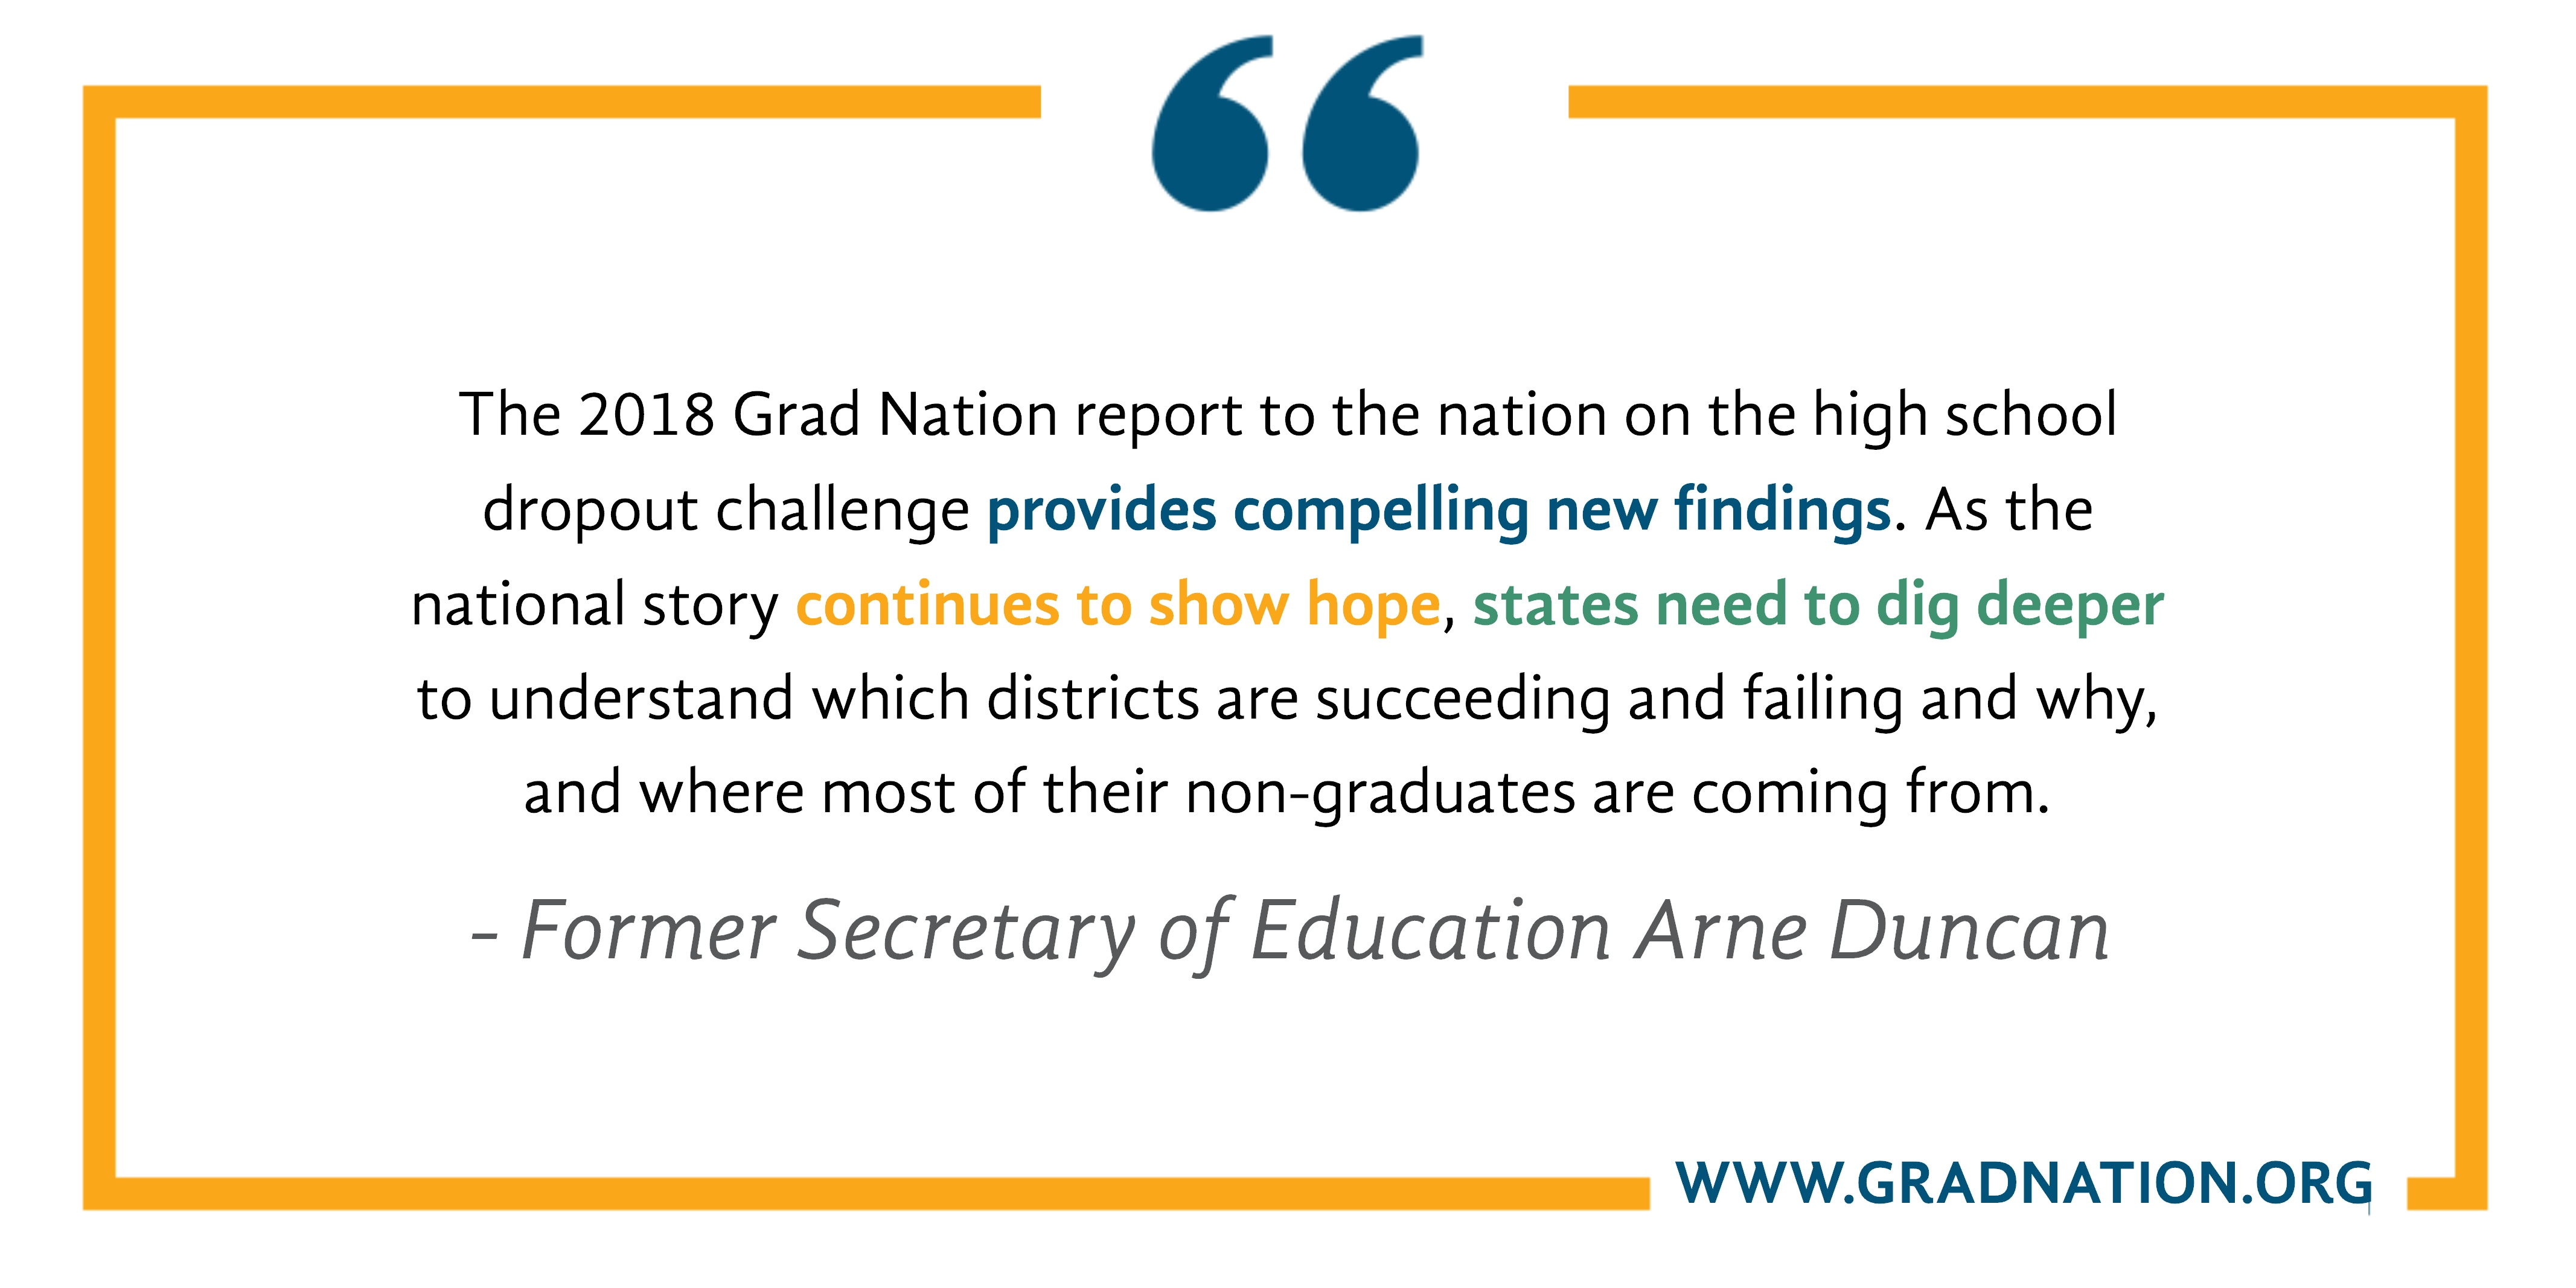 The 2018 Grad Nation report to the nation on the high school dropout challenge provides compelling new findings. As the national story continues to show hope, states need to dig deeper to understand which districts are succeeding and failing and why, and where most of their non-graduates are coming from. -Former Secretary of Education Arne Duncan